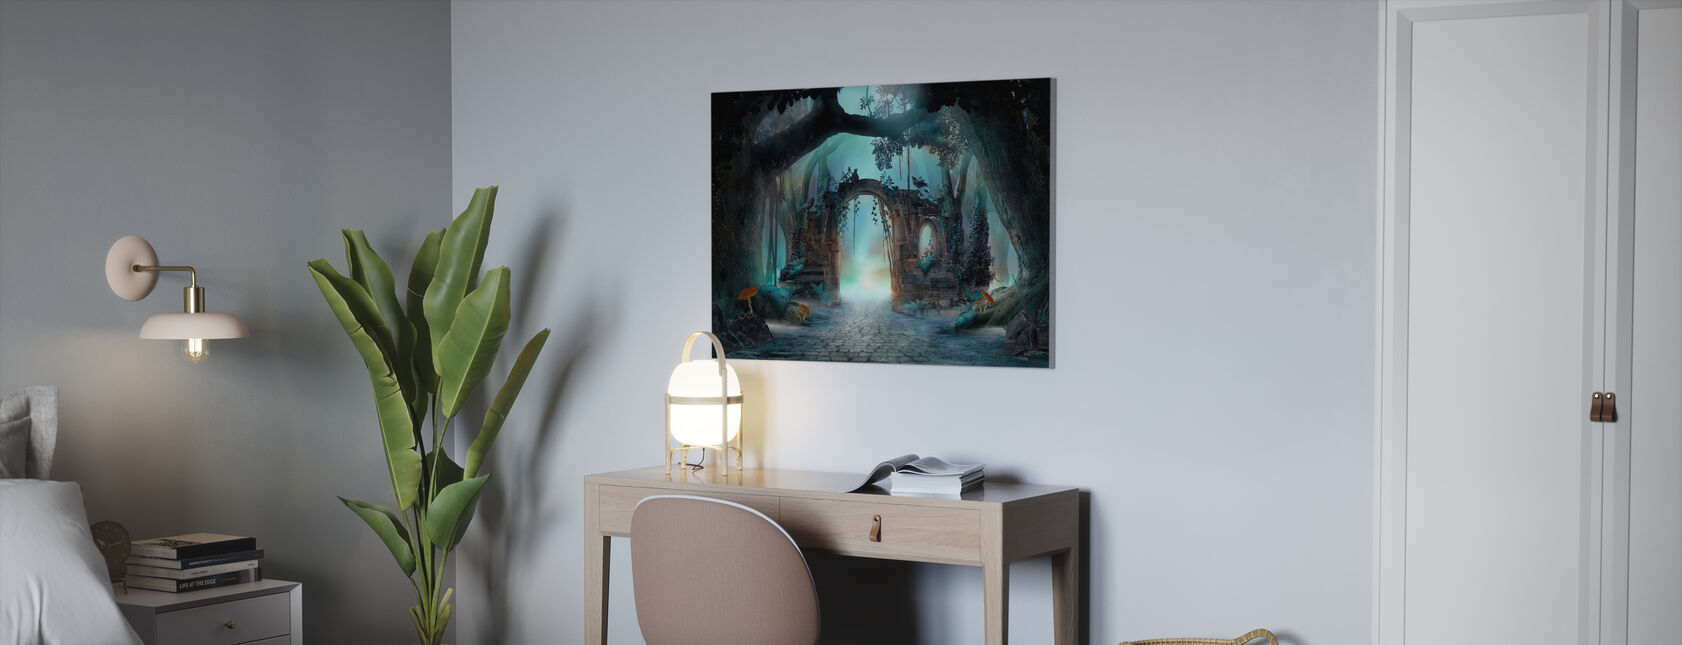 Archway in an Enchanted Forest - Canvas print - Office